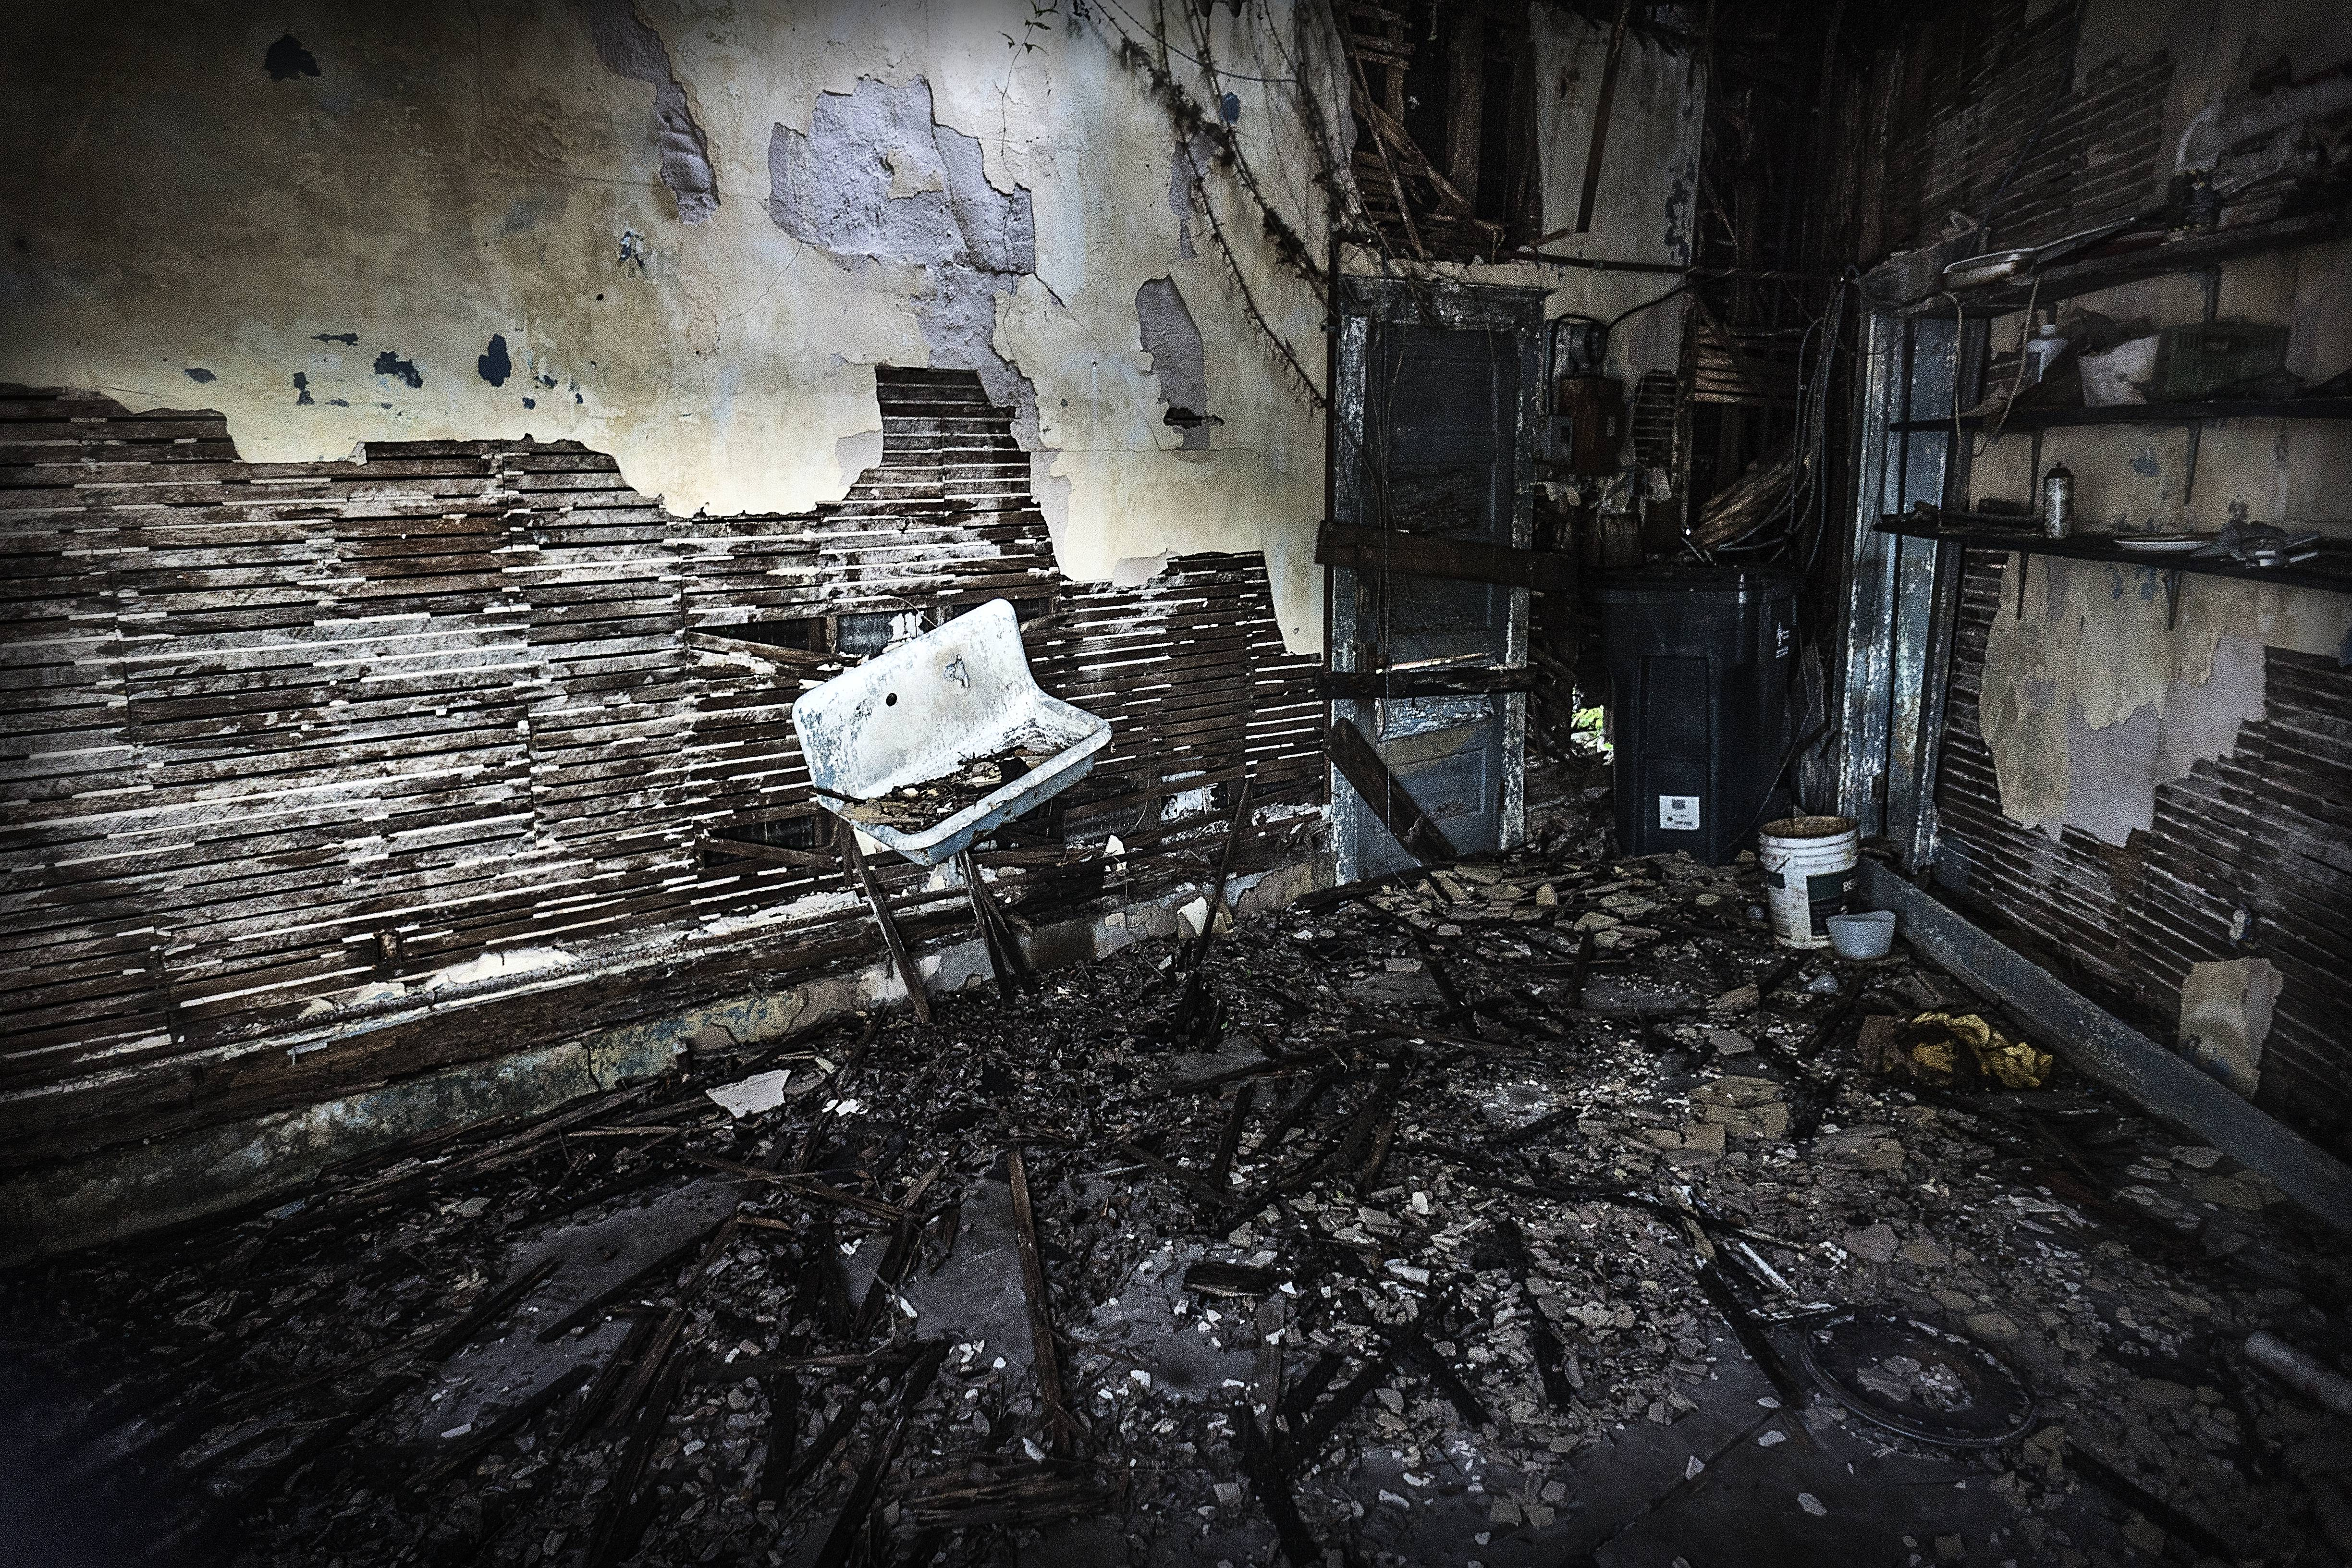 Abandoned buildings have a certain sense of mystery, but not in this case